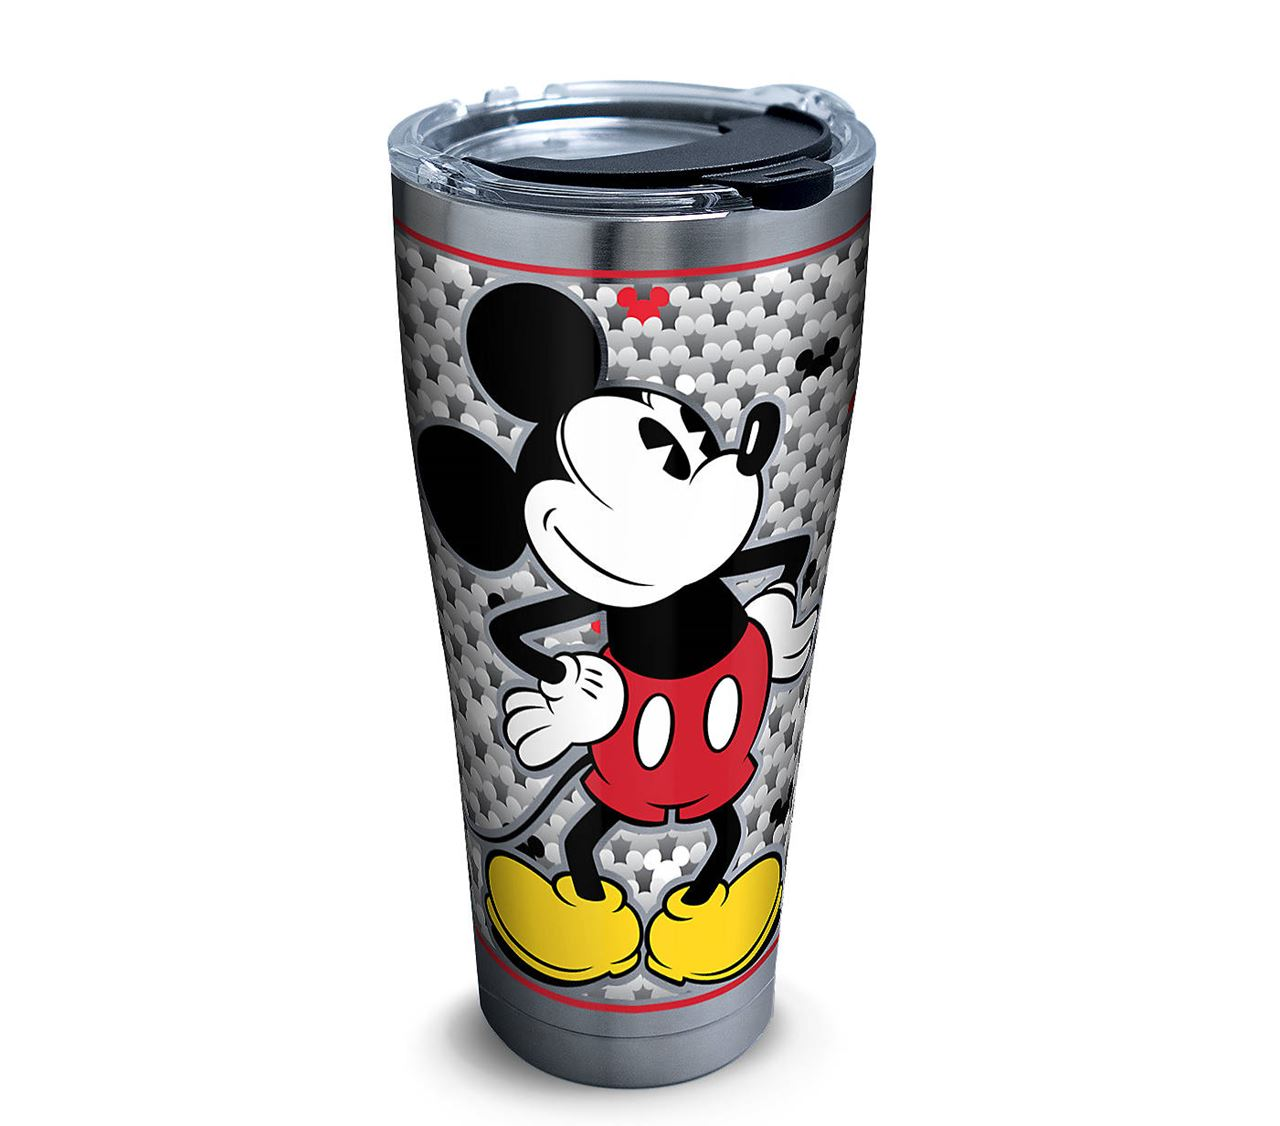 Disney - Mickey Mouse Silver 30oz. Stainless Steel Tumbler by Tervis